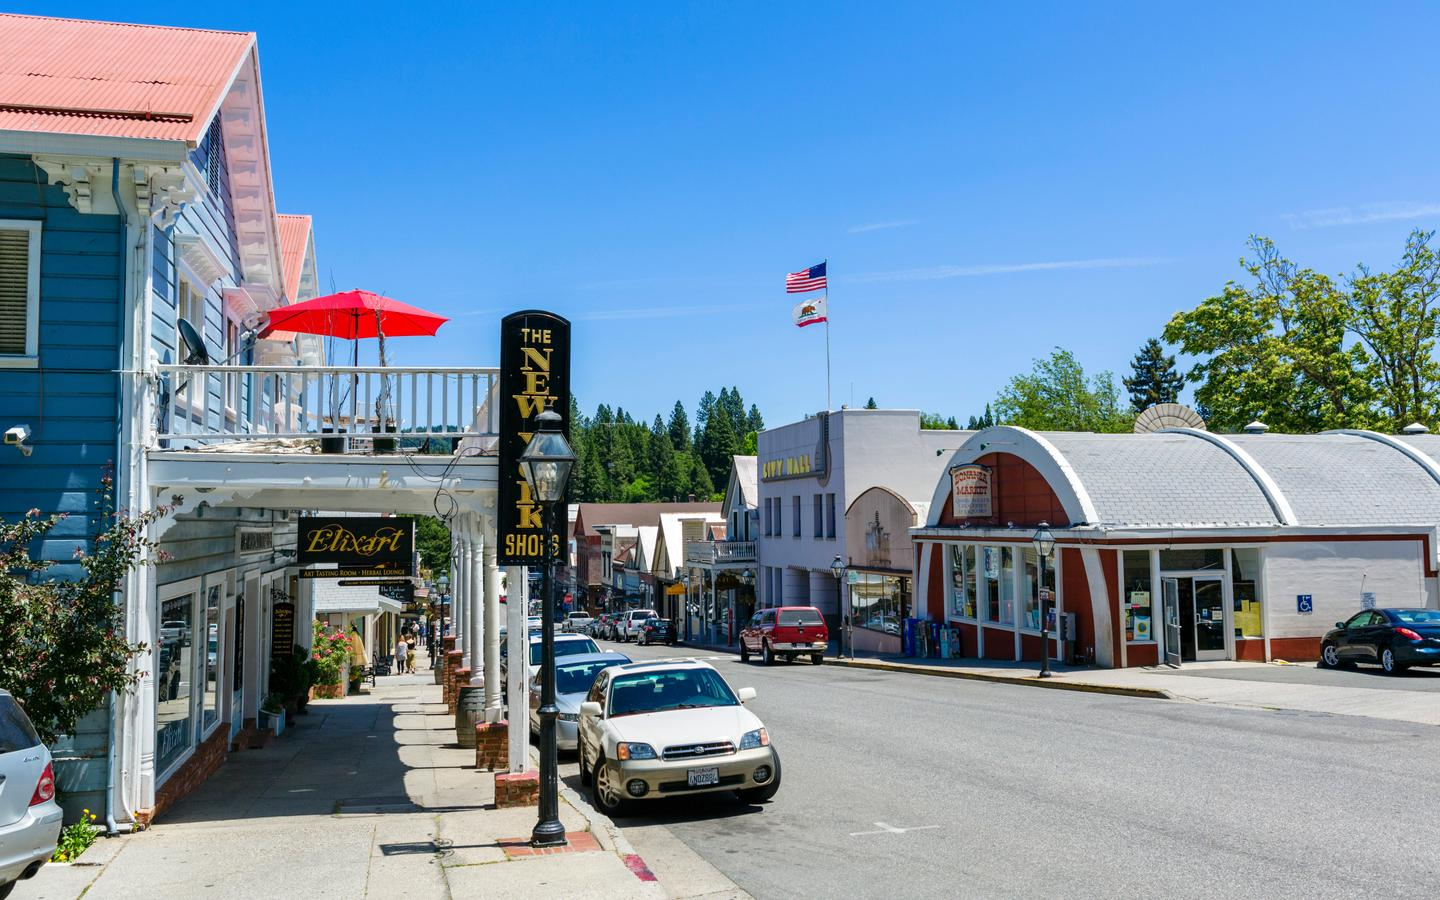 16 Best Hotels in Nevada City  Hotels from $88/night - KAYAK